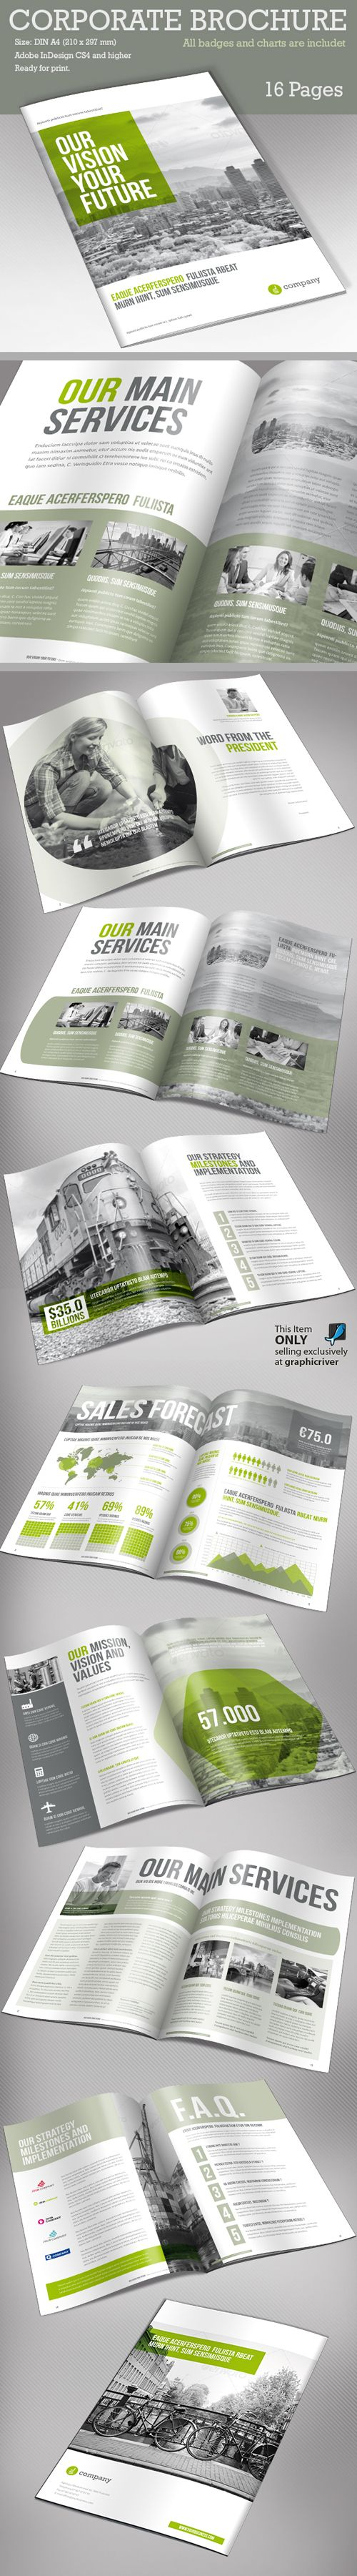 Corporate Brochure Template v